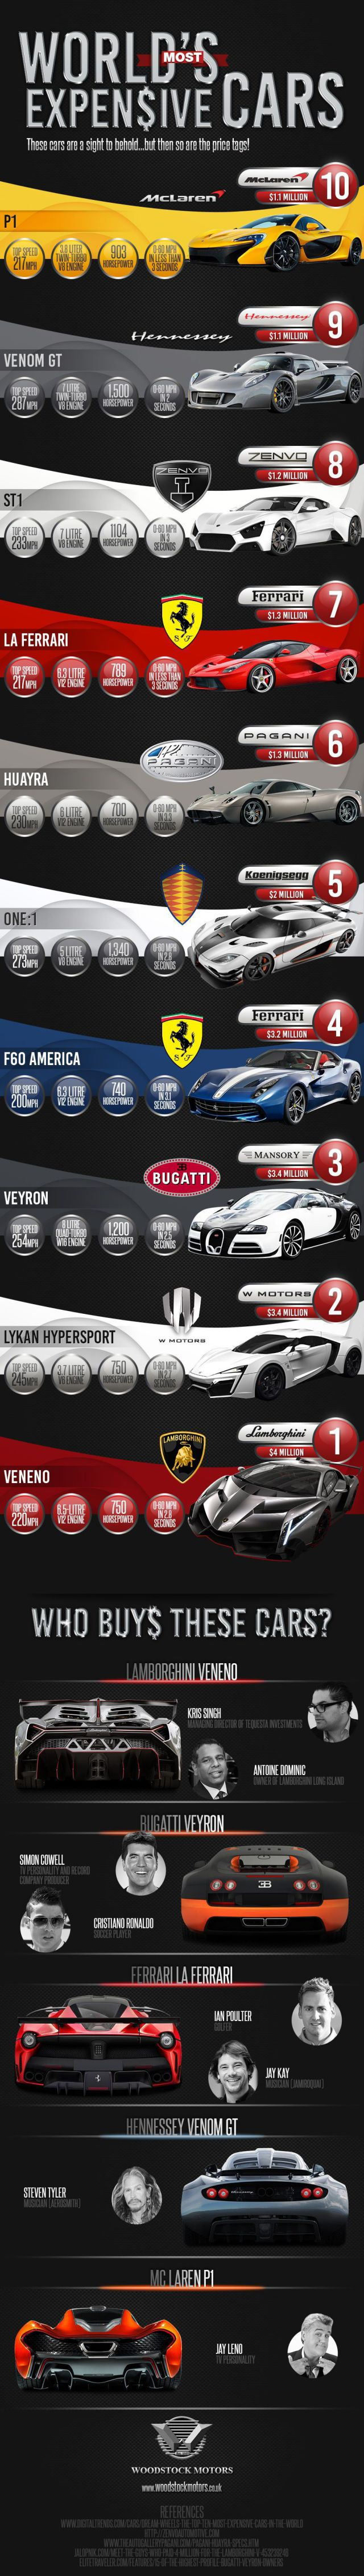 Most Expensive Cars in the World Infographic